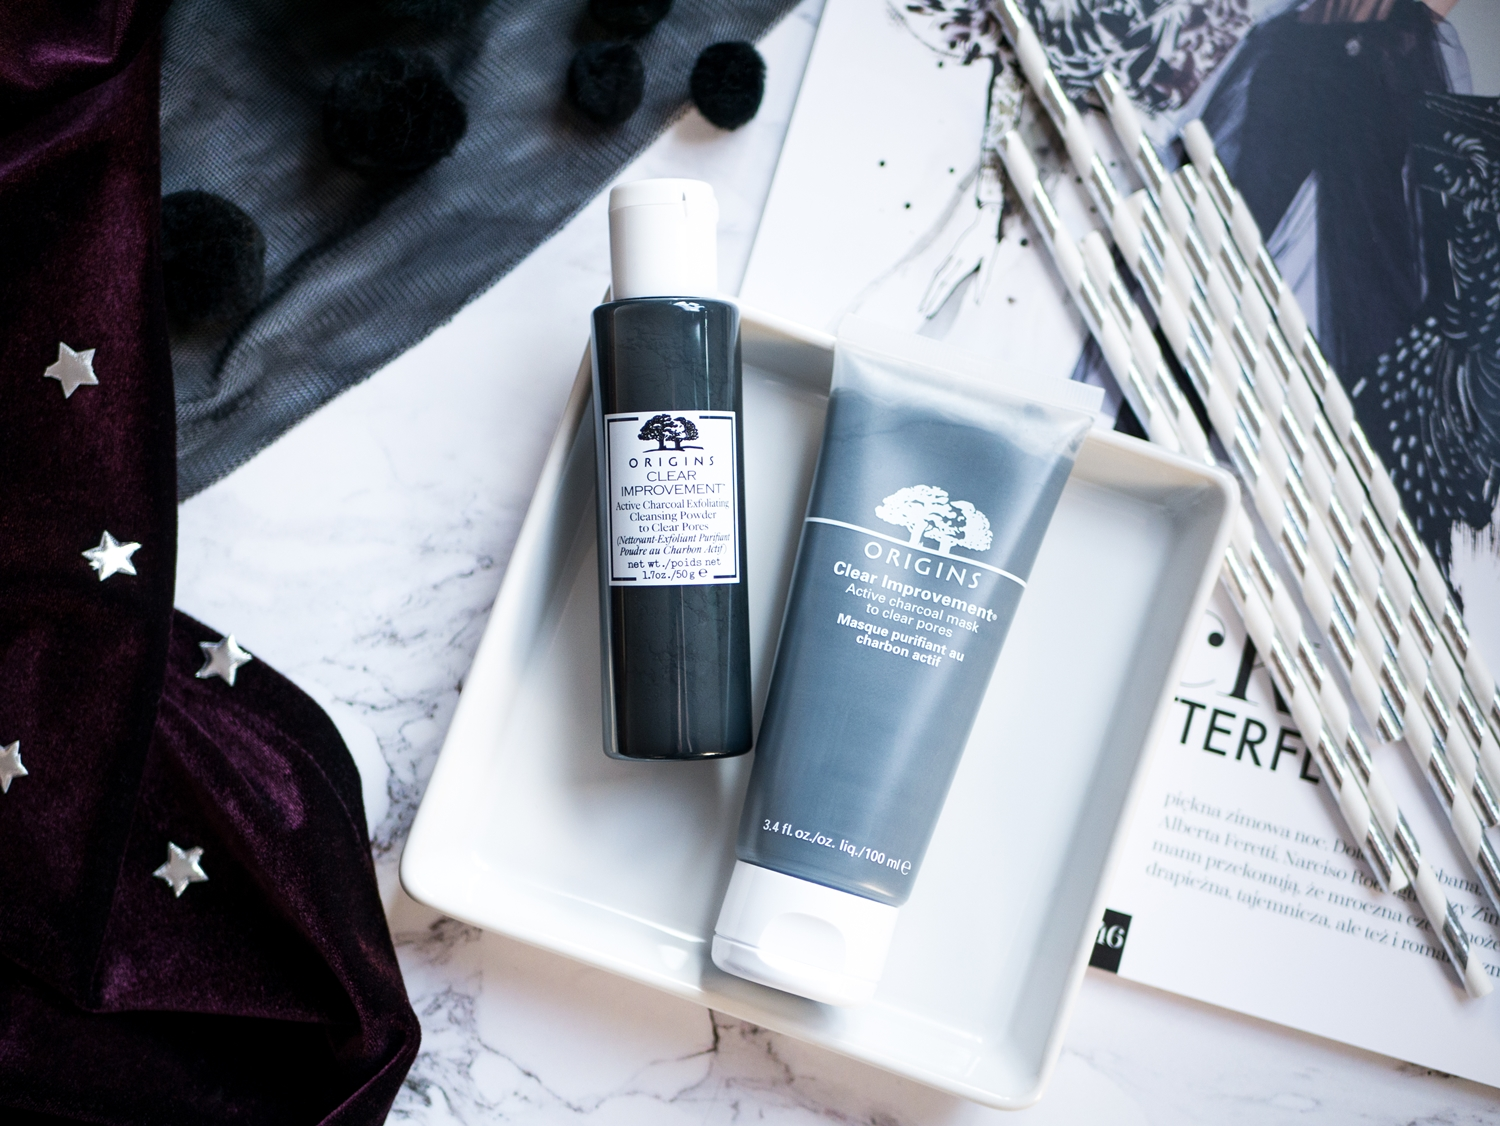 Origins Clear Improvement Active Charcoal Exfoliating Cleansing & Mask